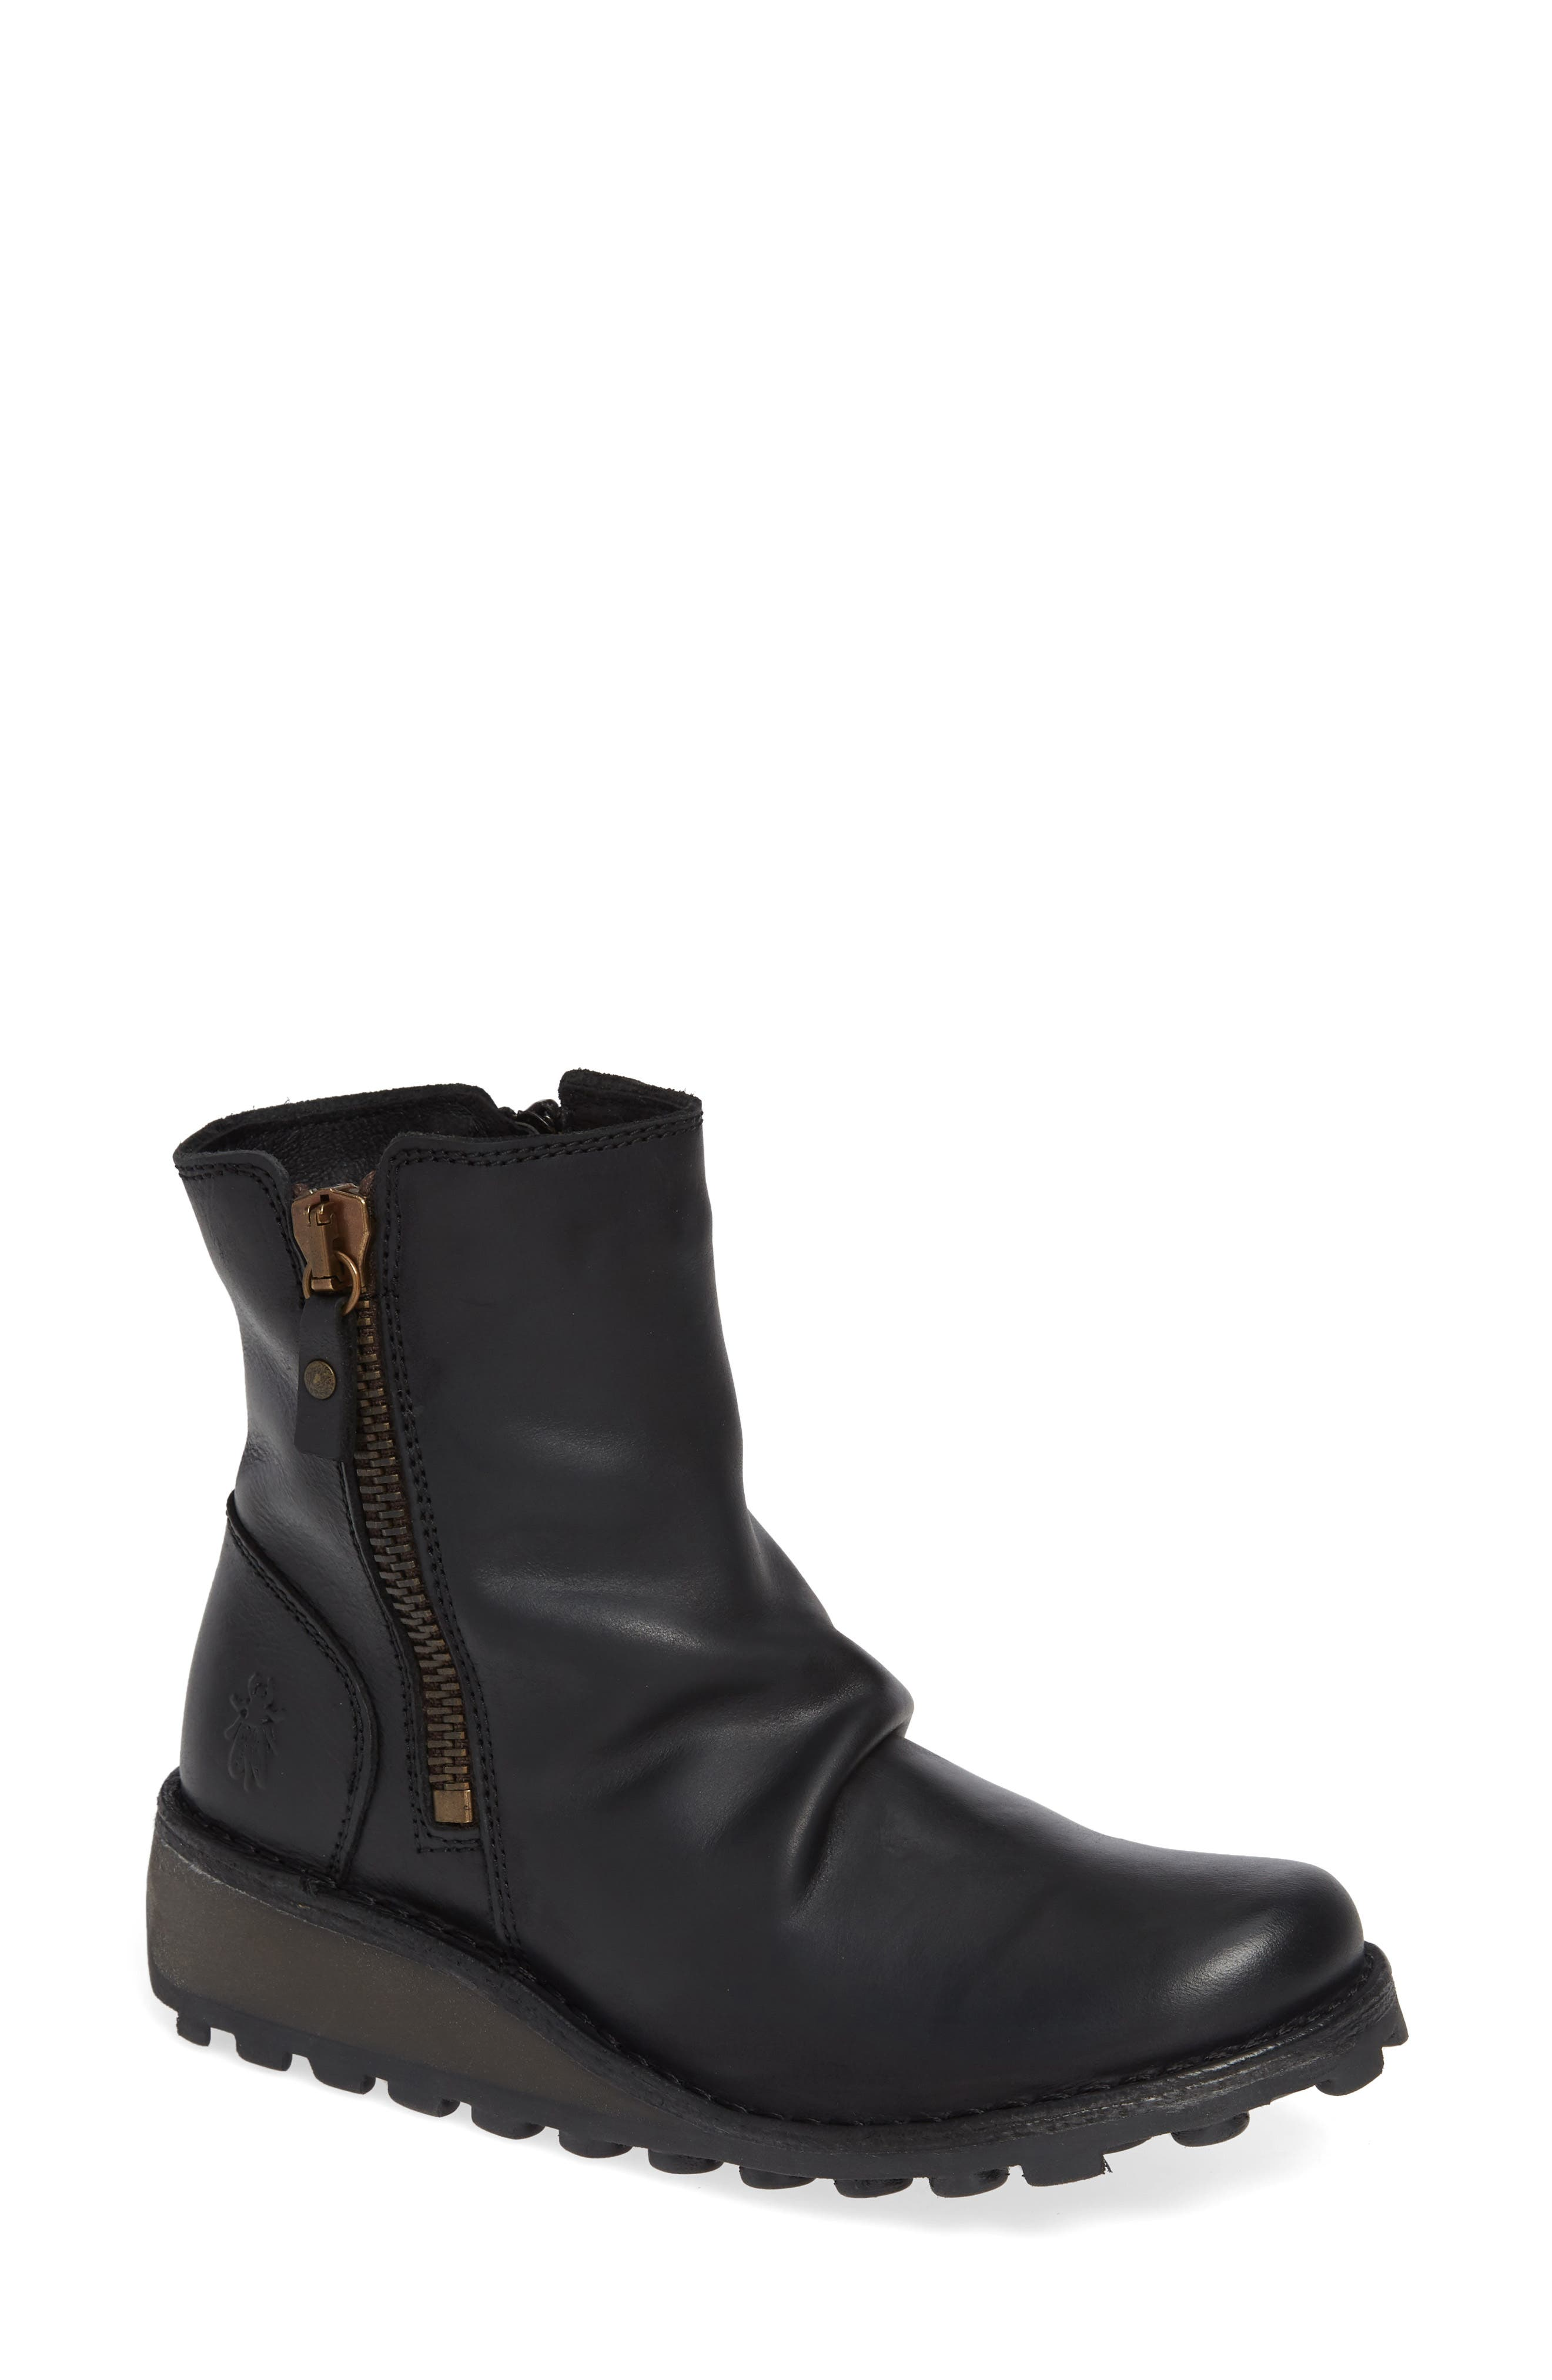 FLY LONDON, Mong Boot, Main thumbnail 1, color, BLACK LEATHER